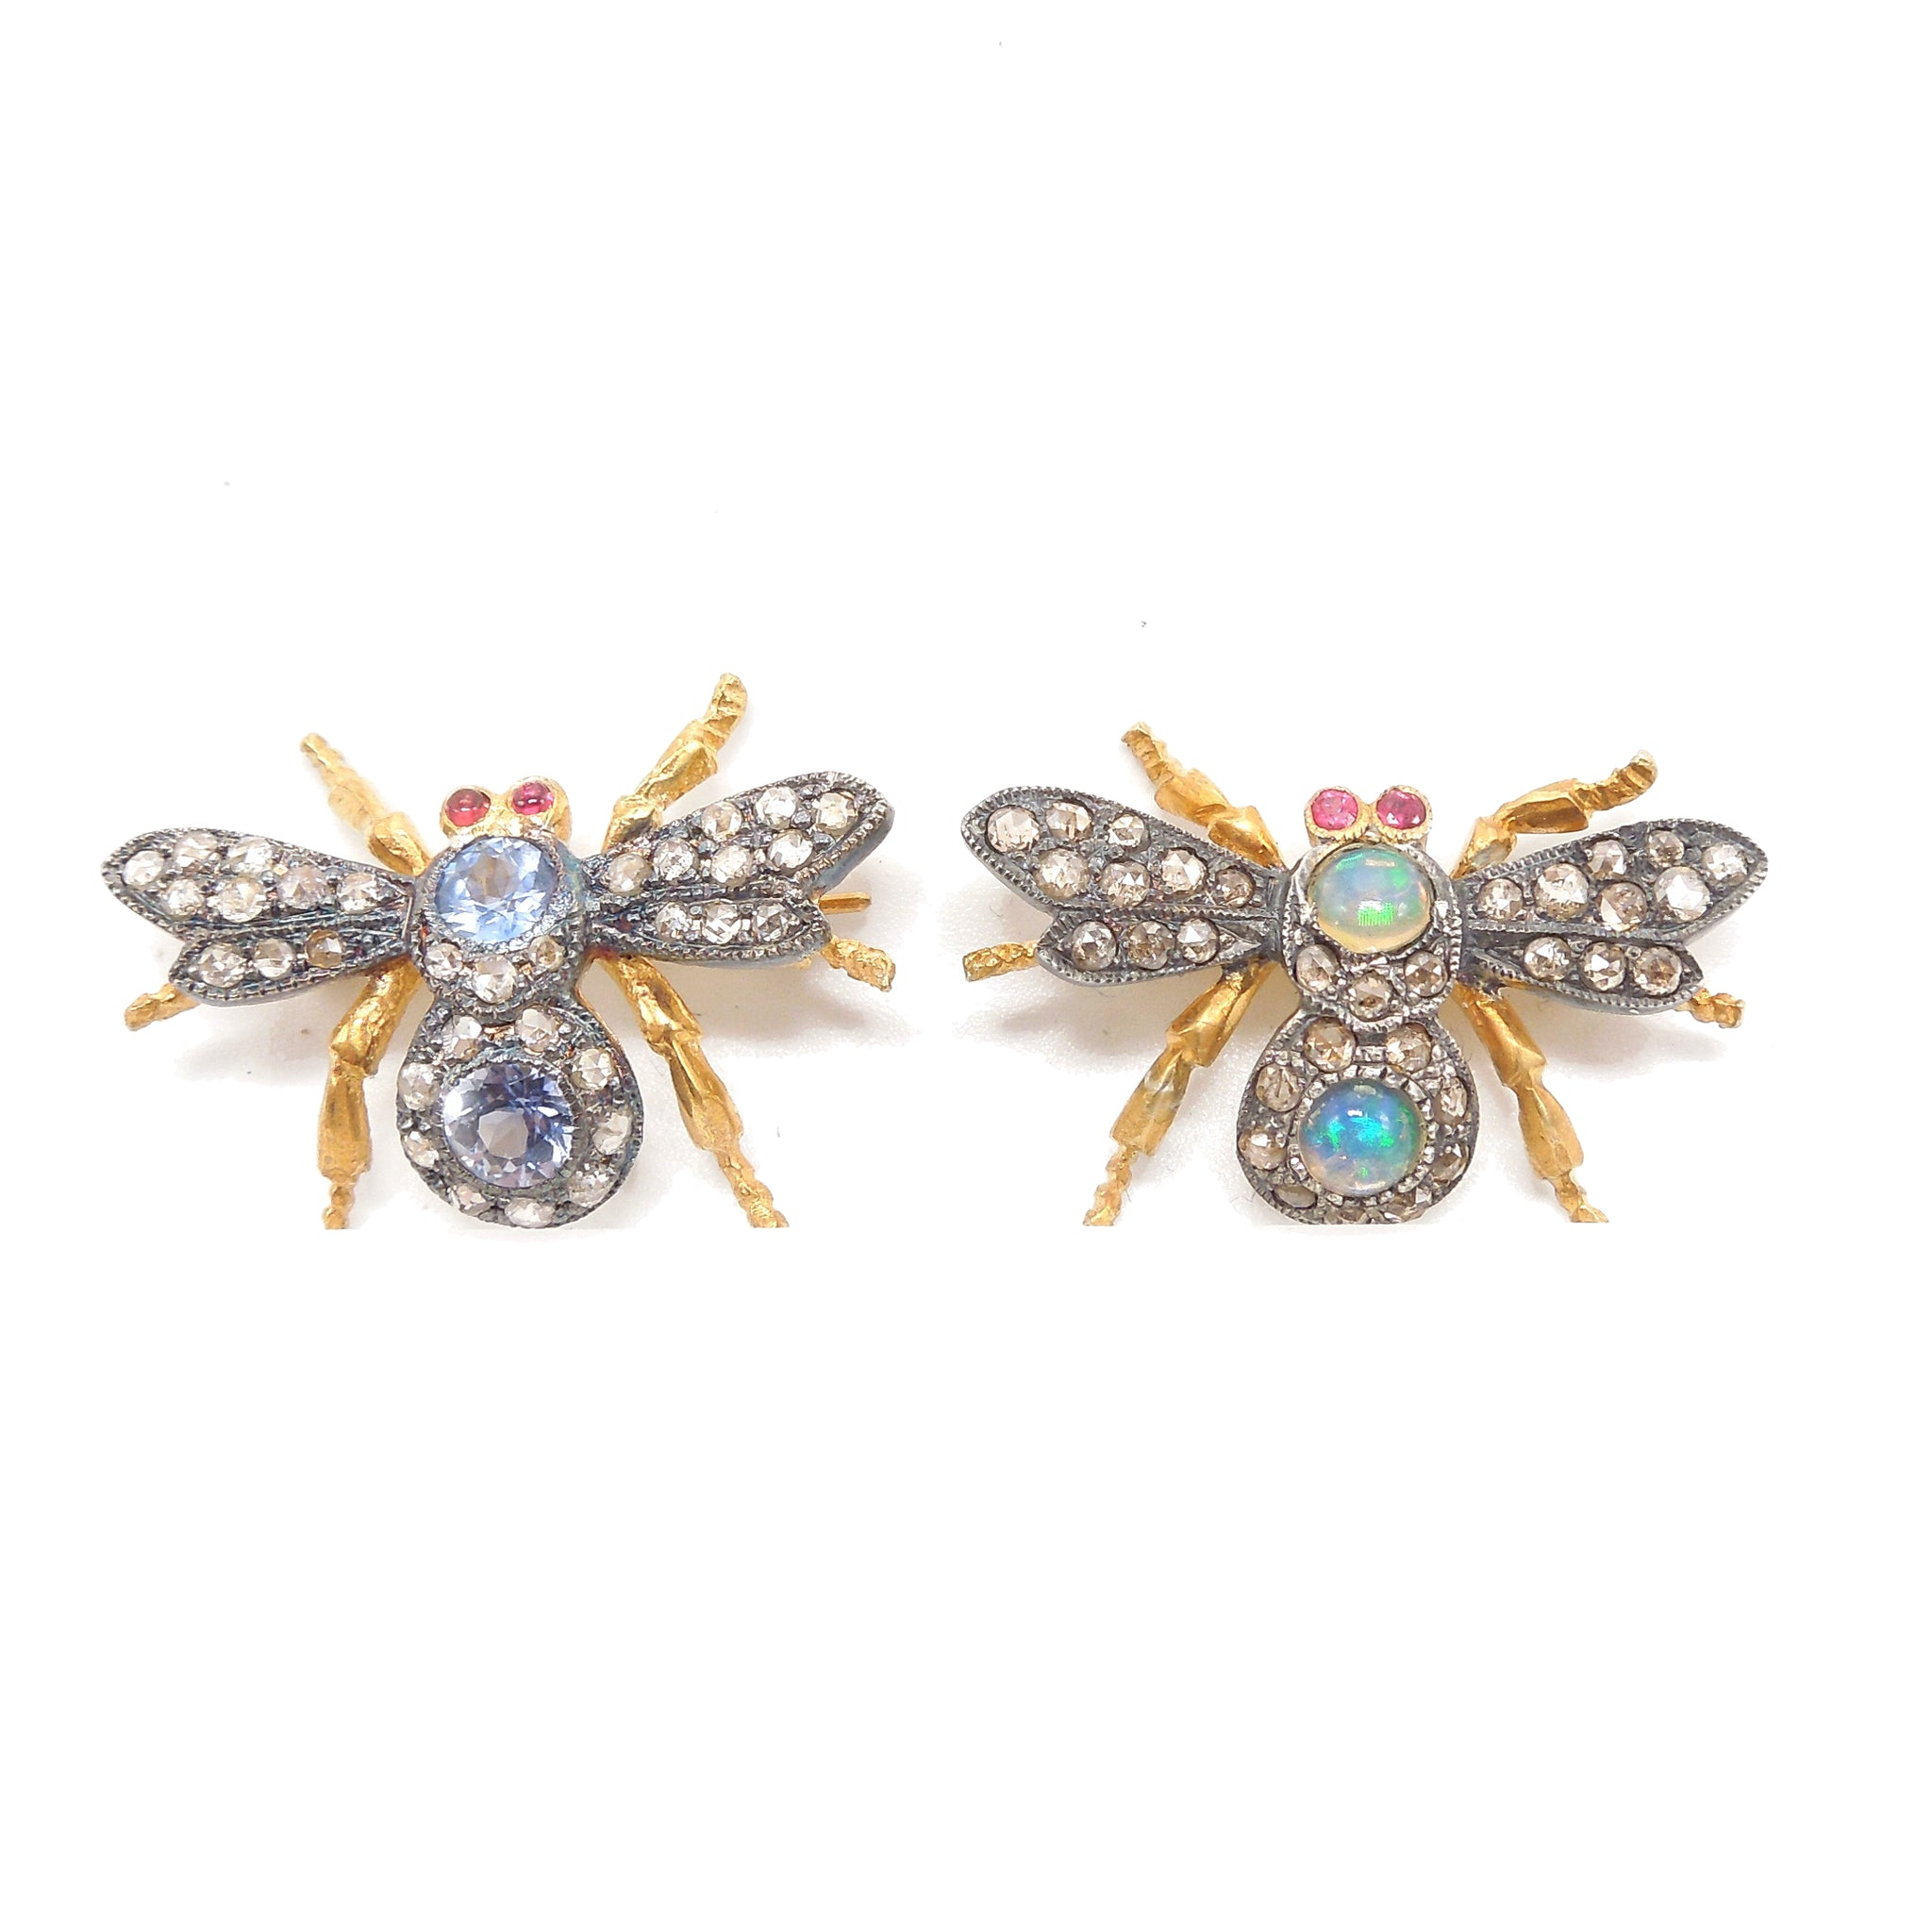 Pair of Gilded and Oxidized Sterling Silver Bee Pin/Pendants with Opals, Diamonds, and Sapphires